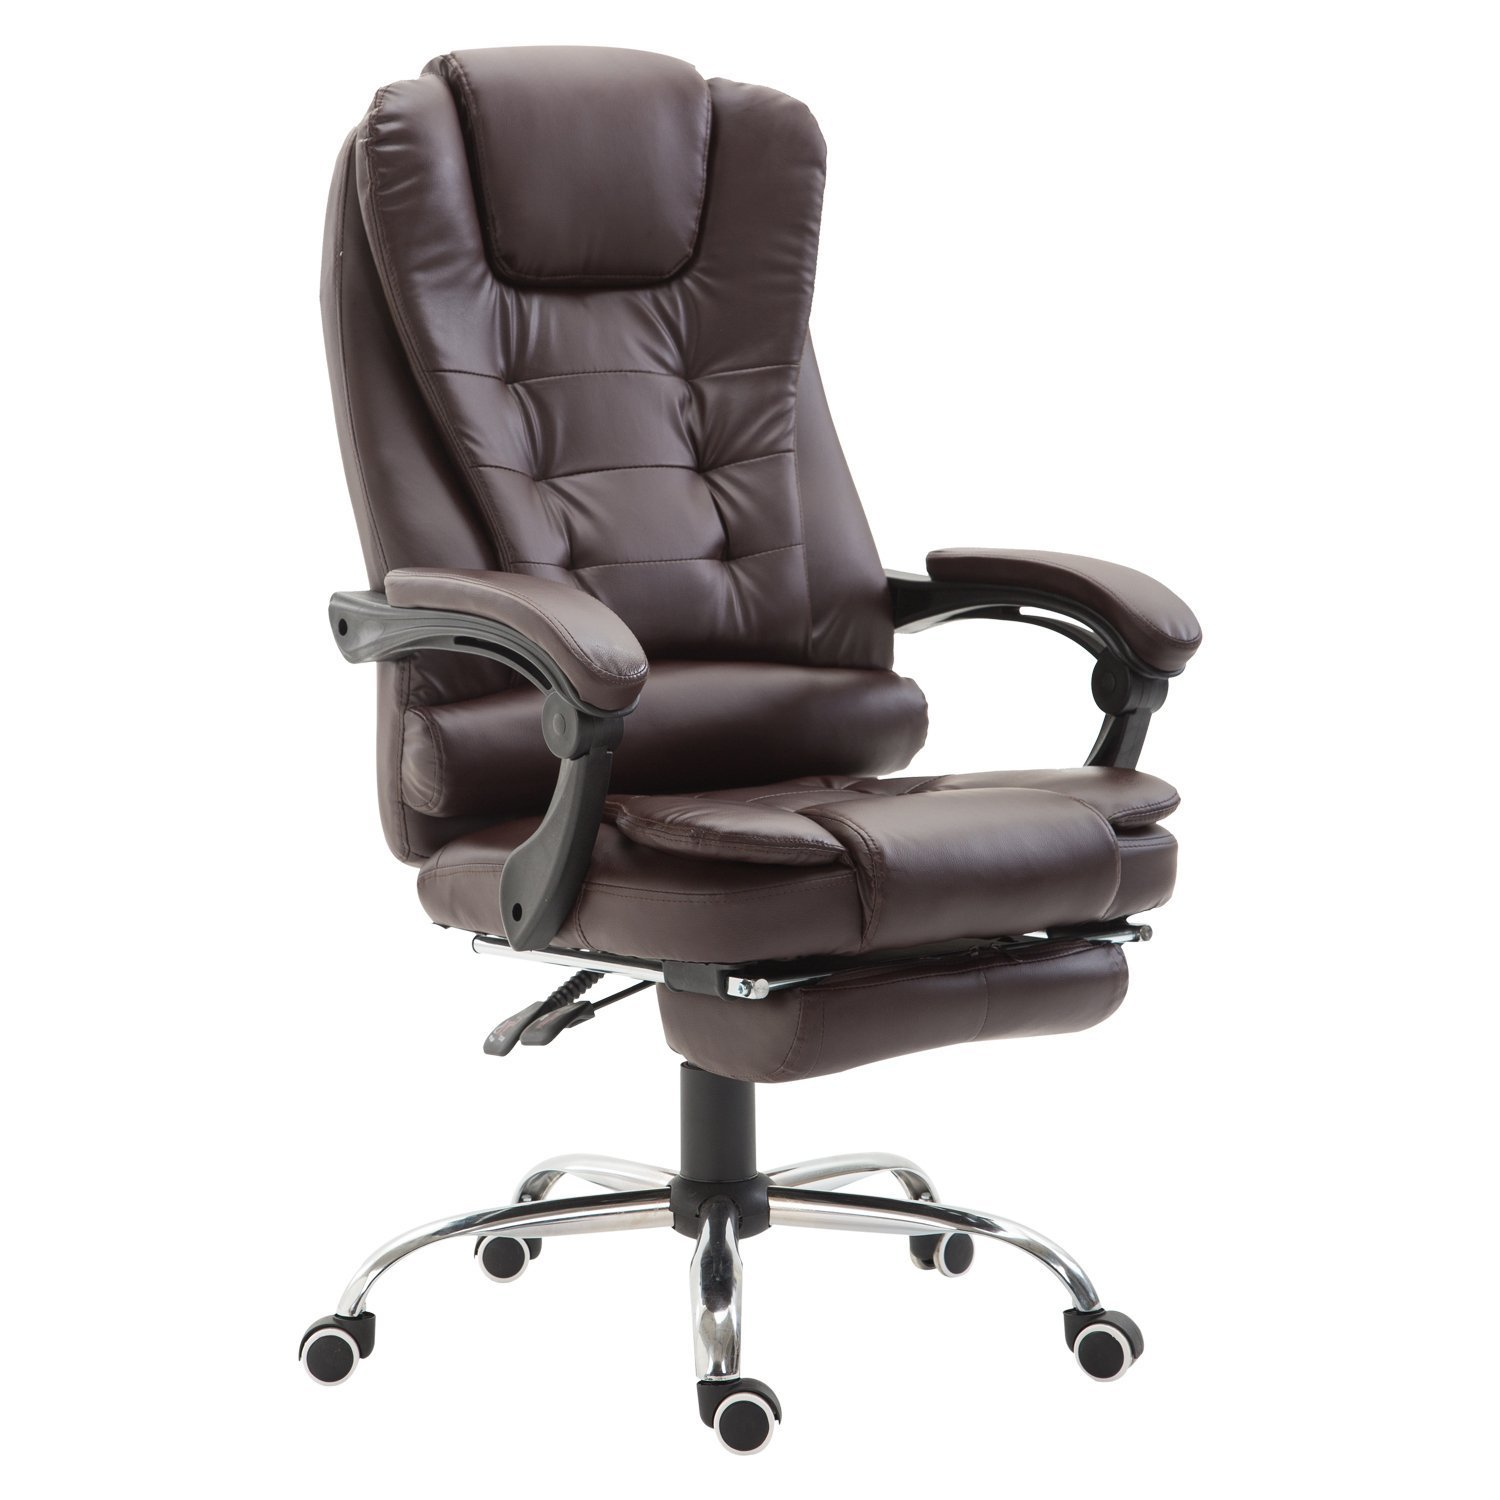 HomCom Reclining PU Leather Executive Home Office Chair with Footrest - Dark Brown by HOMCOM